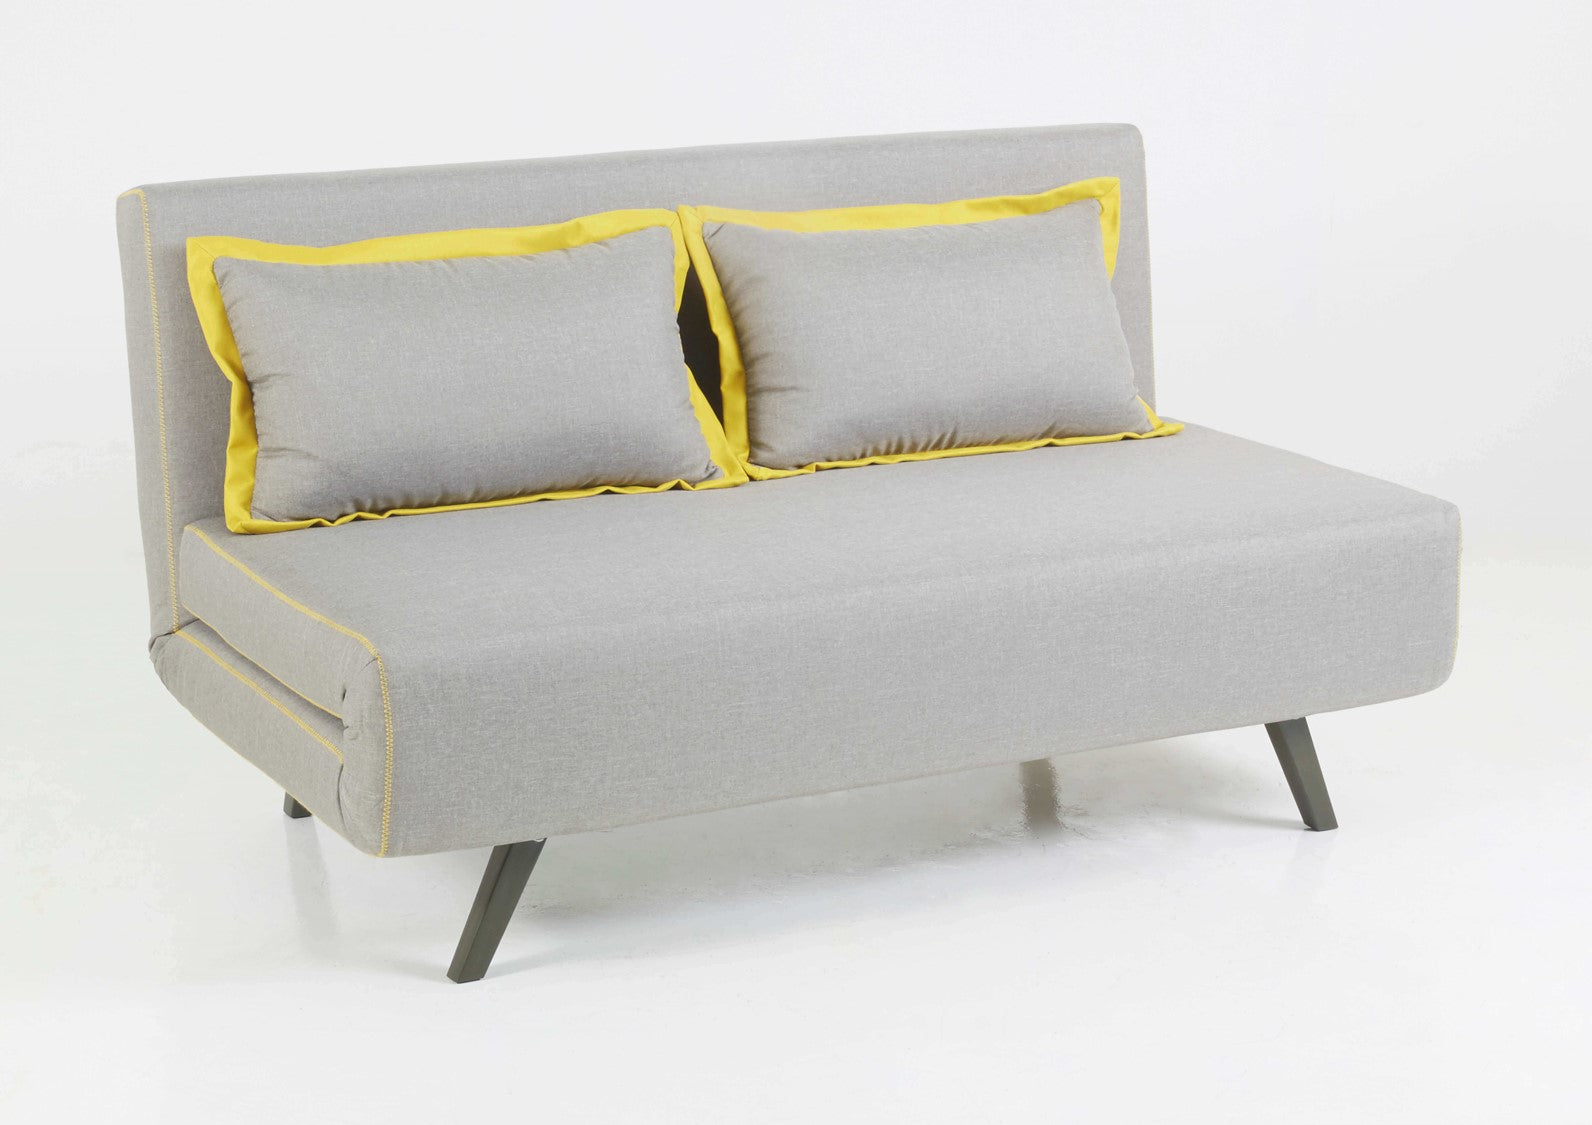 Ascona Sofa Bed More Than Just A Sofa